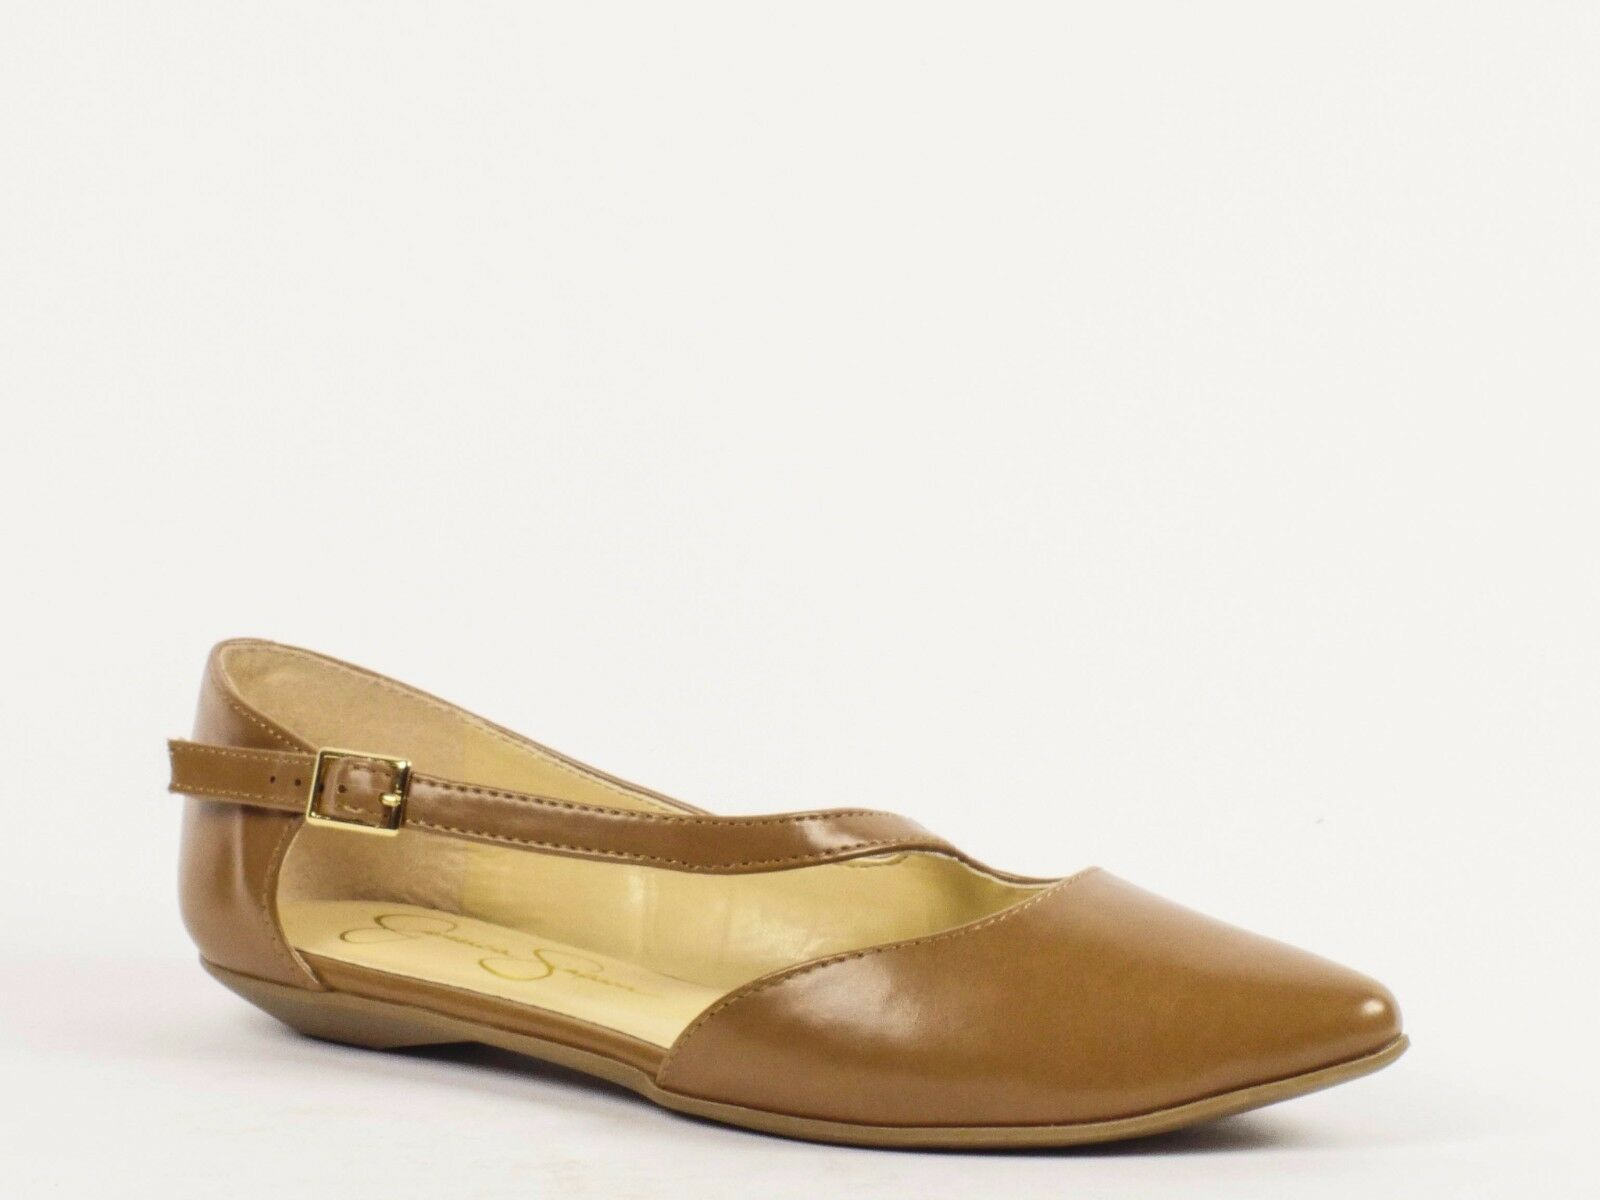 Jessica Simpson Thaye Flats Tan Leather Pointed Toe Taille 6.5 NEW  79